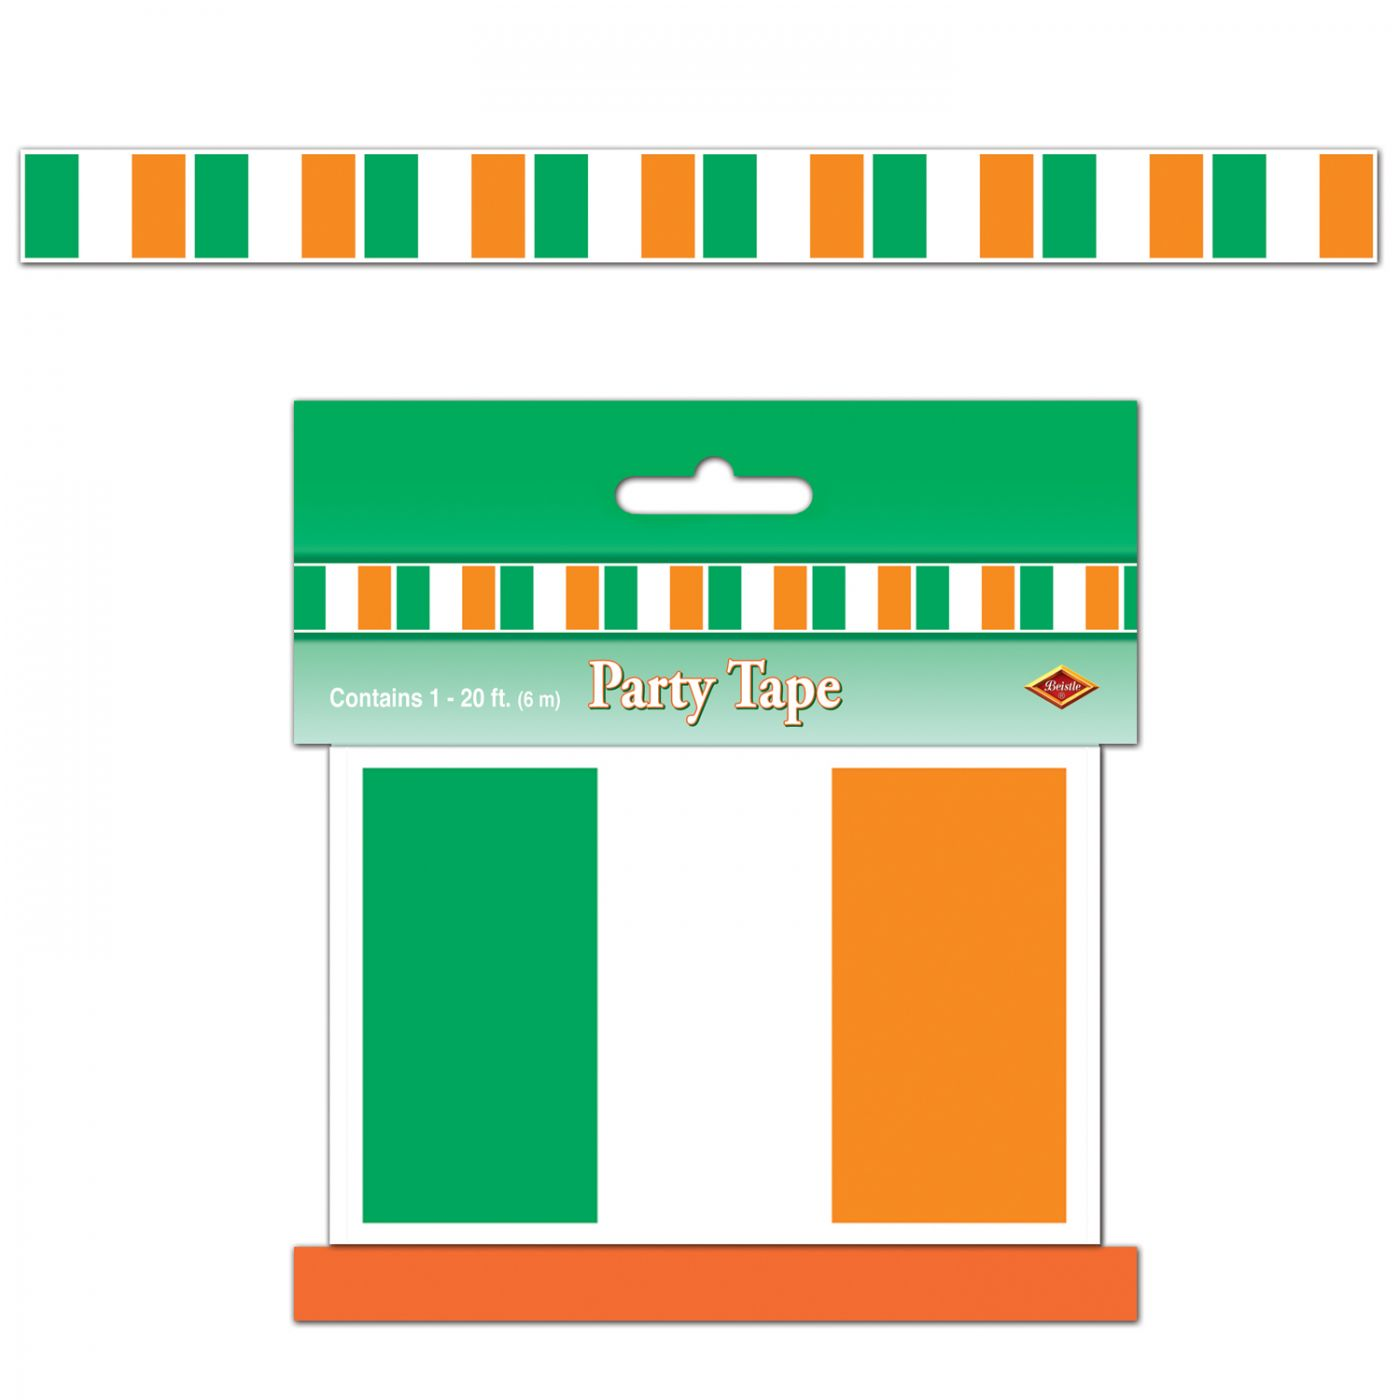 Irish Flag Party Tape image